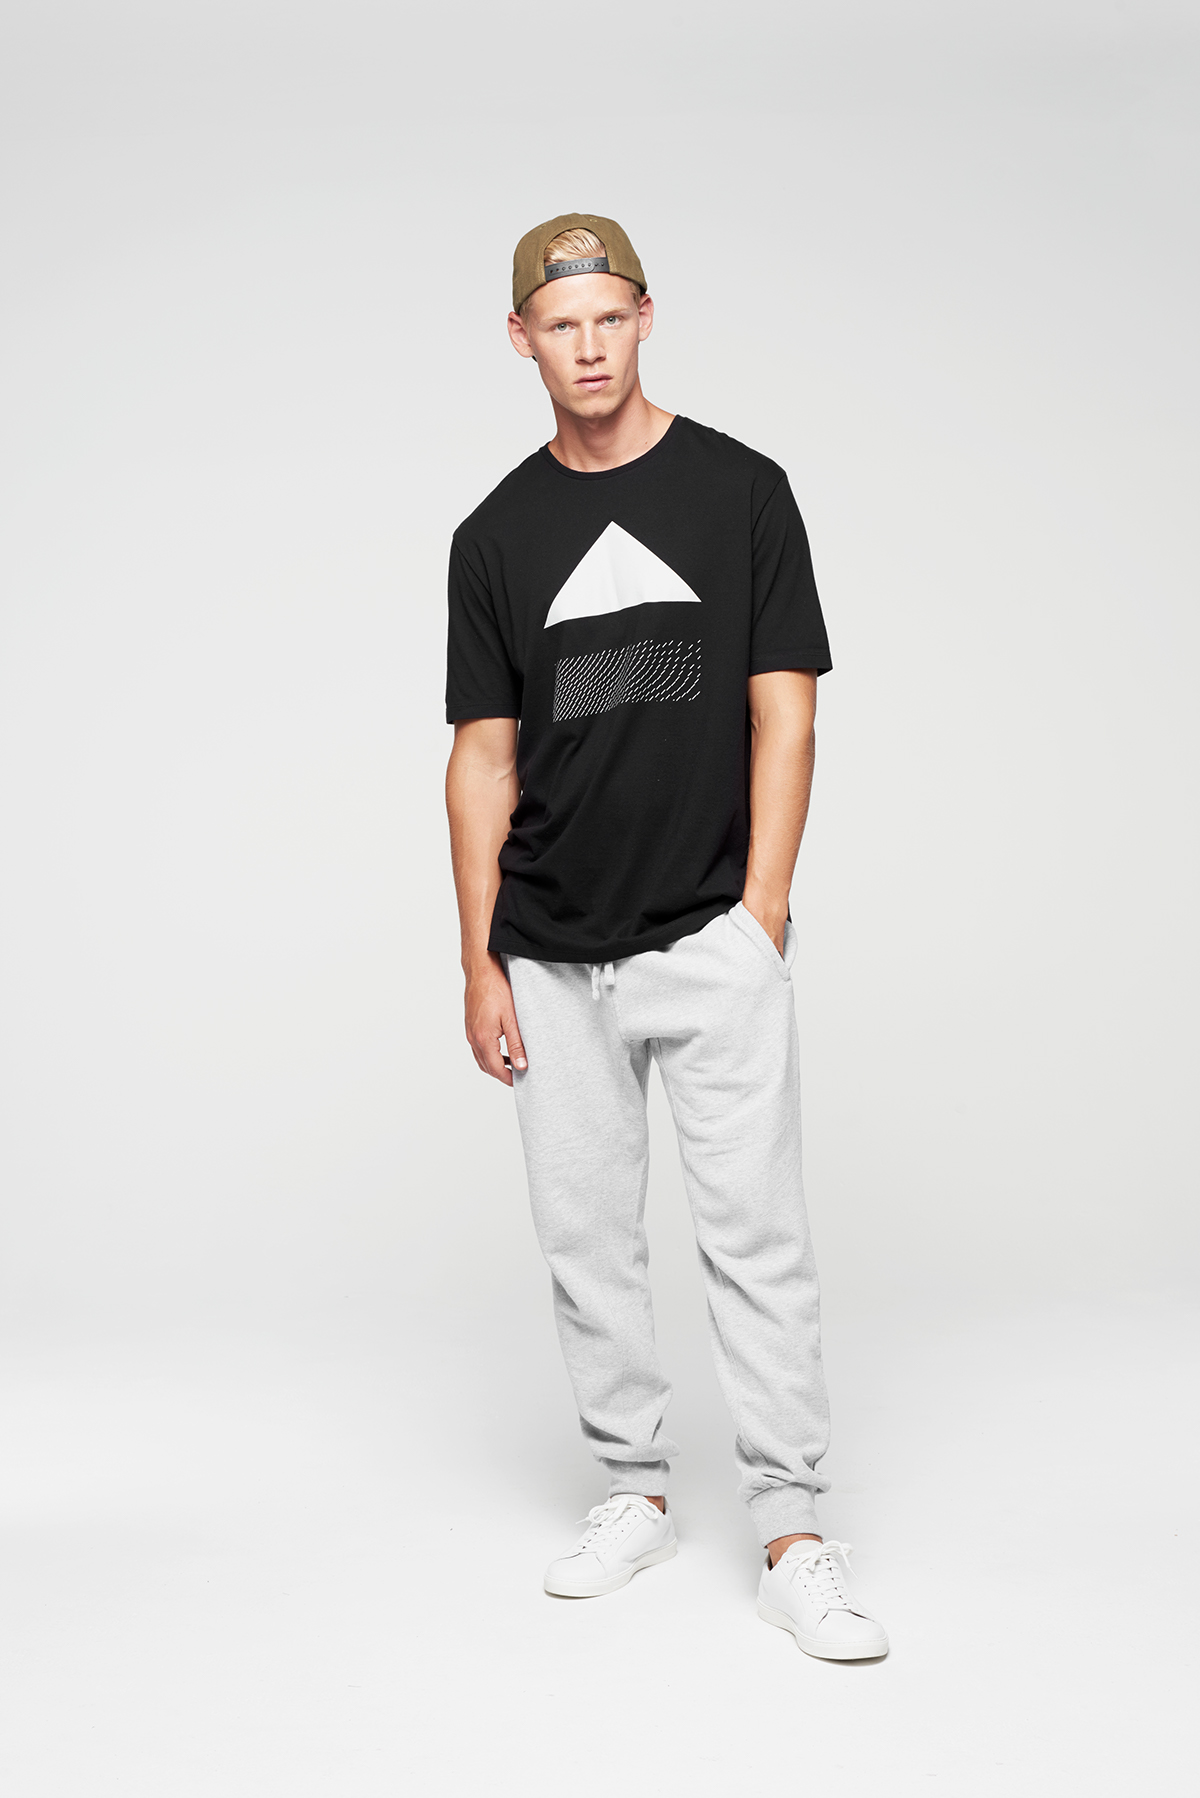 kygo t-shirt music icons rewind pause Eject Fashion